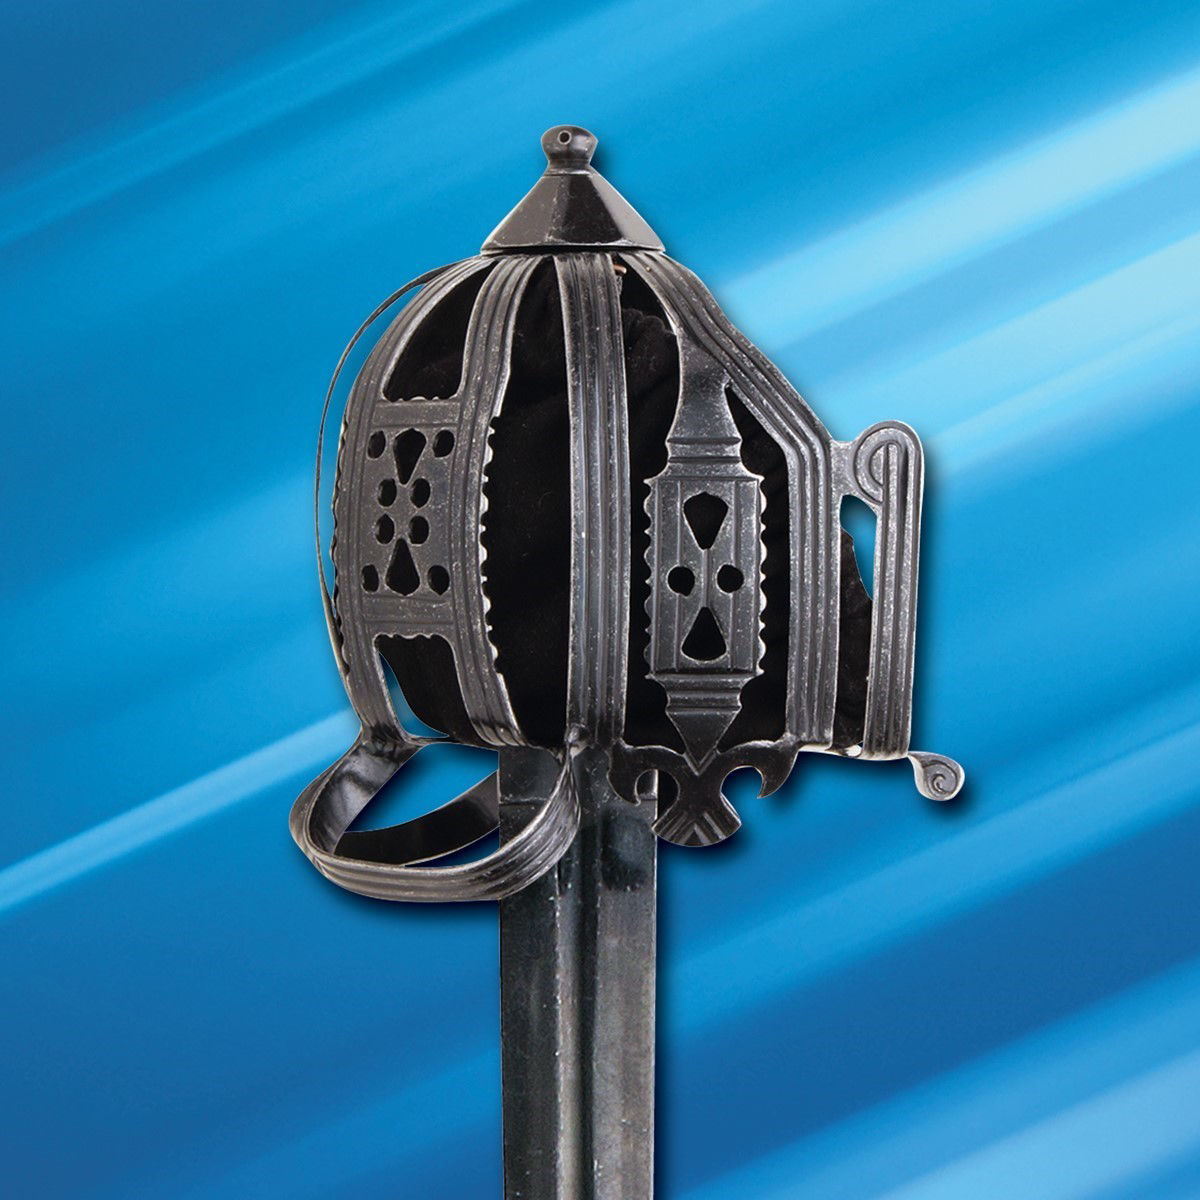 Battlecry Culloden Basket-Hilt Sword has darkened steel basket guard adorned with circular and diamond-shaped cutouts